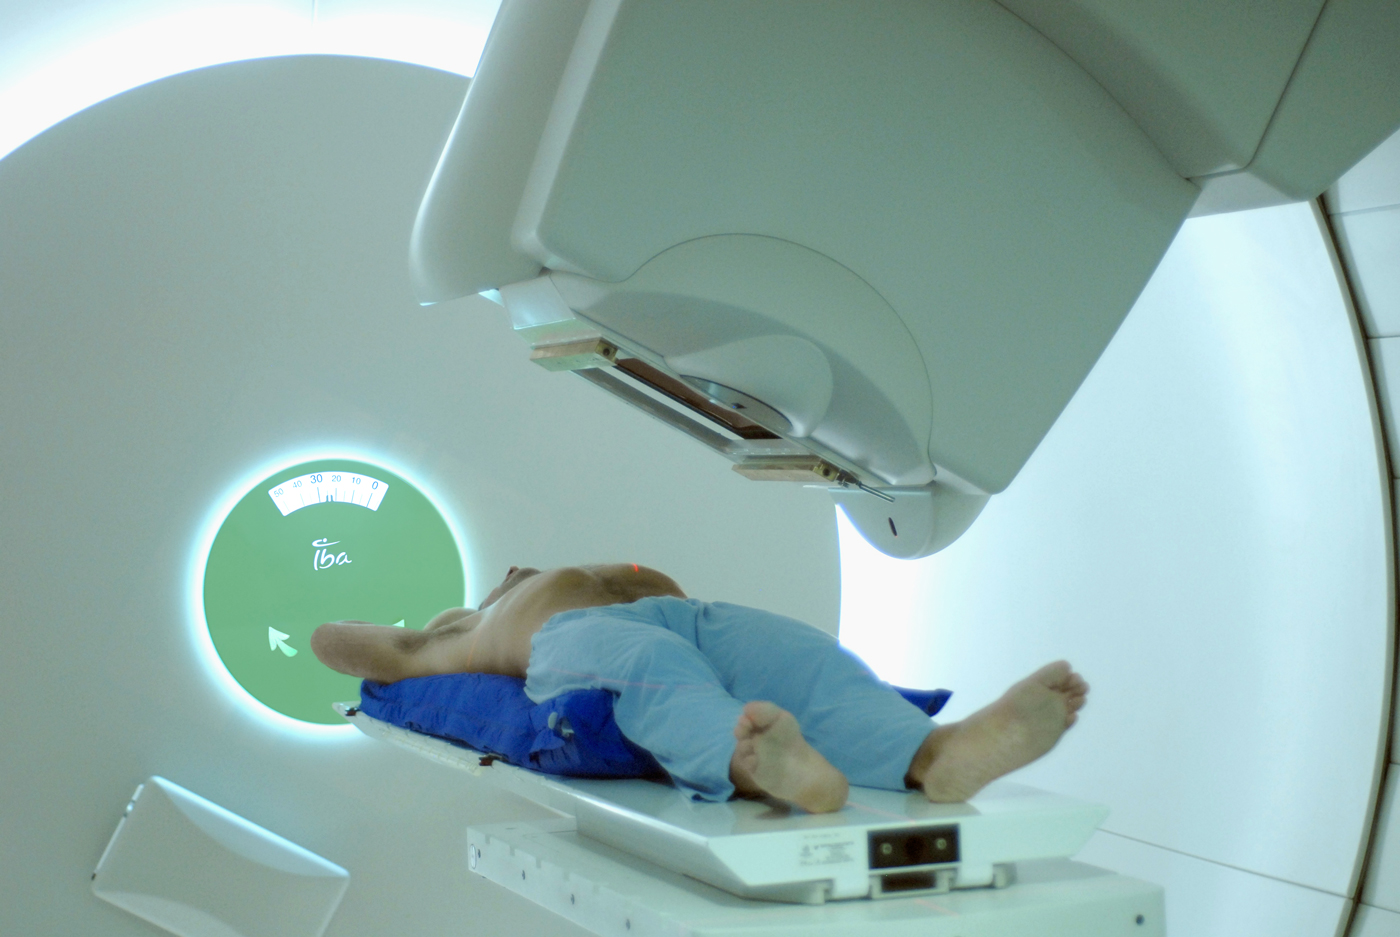 Proton therapy equipment from Belgium's IBA. The company will be equipping a new center in Qingdao, China.